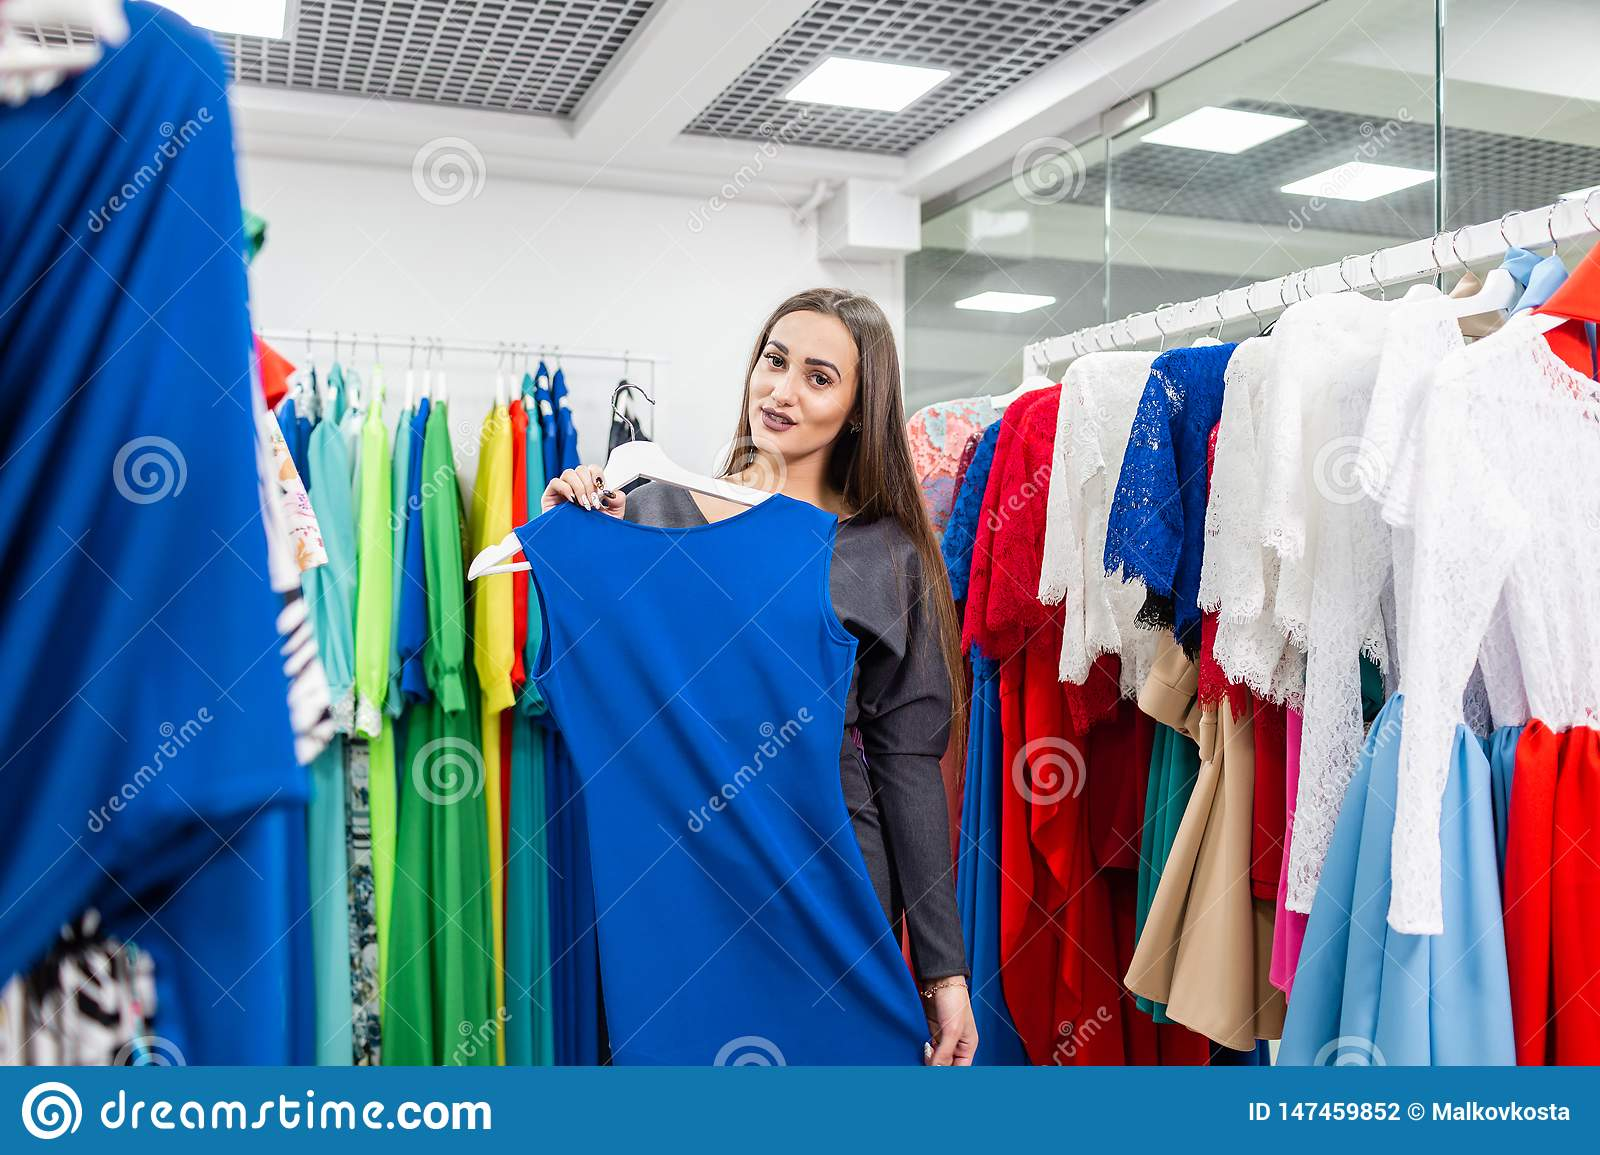 Beautiful girl with blue dress near mirror on room background. Happy young woman choosing clothes in mall or clothing